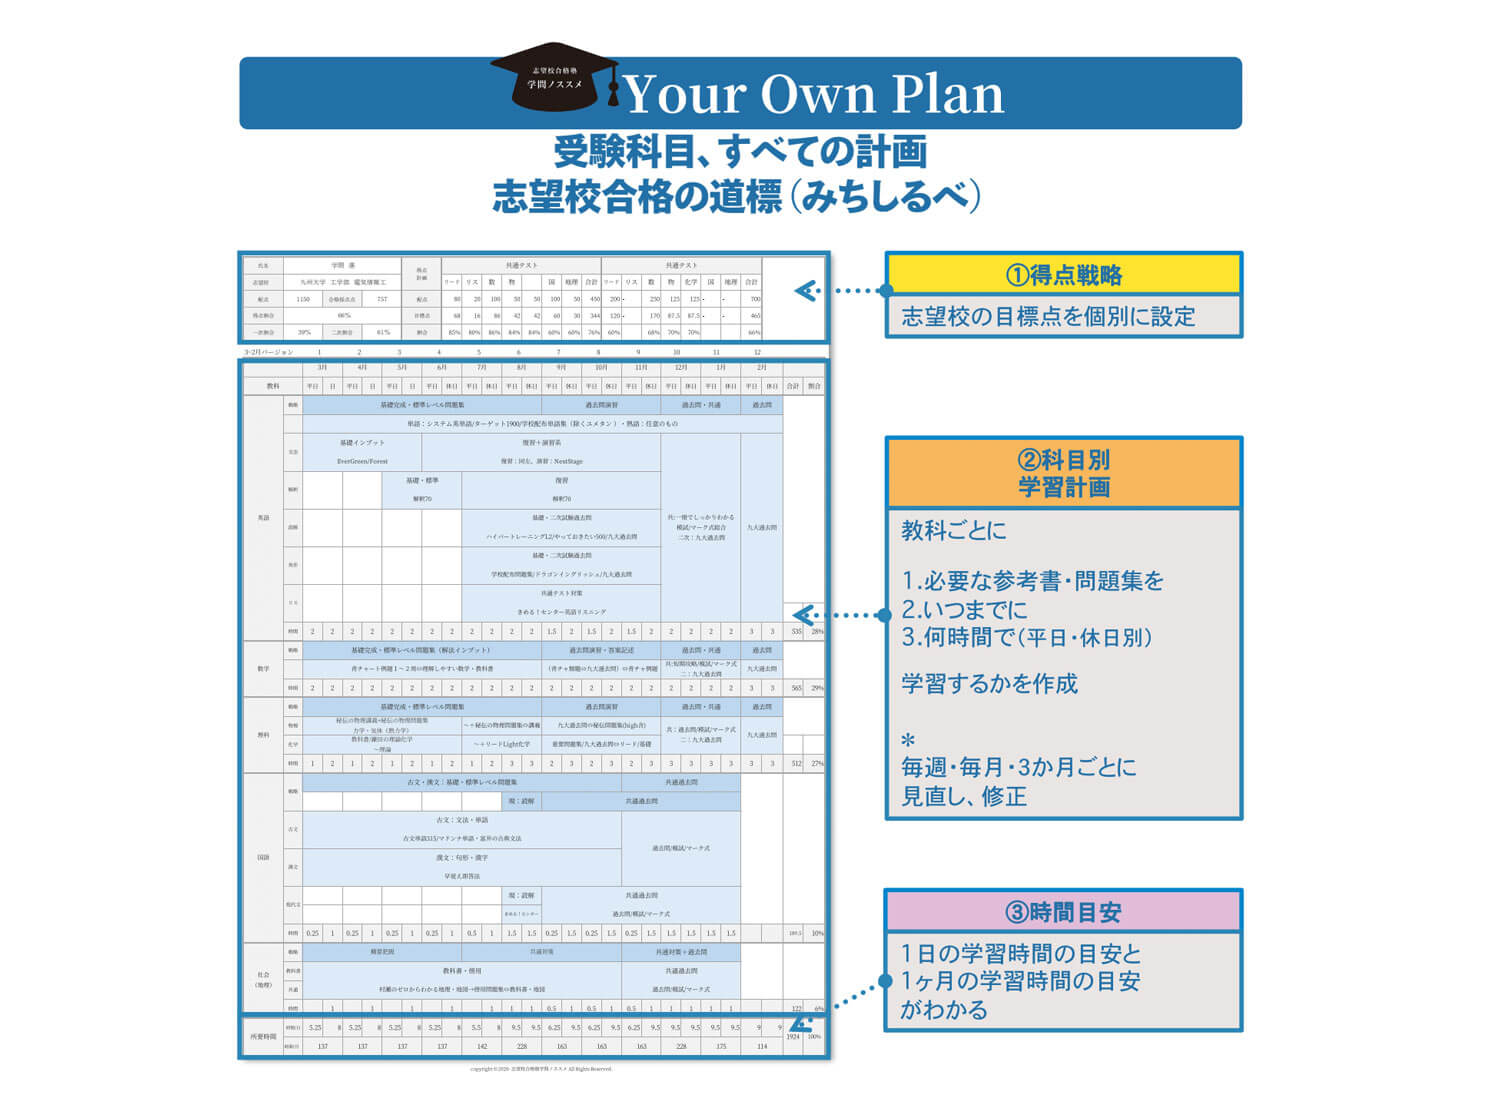 Your Own Plan レポート